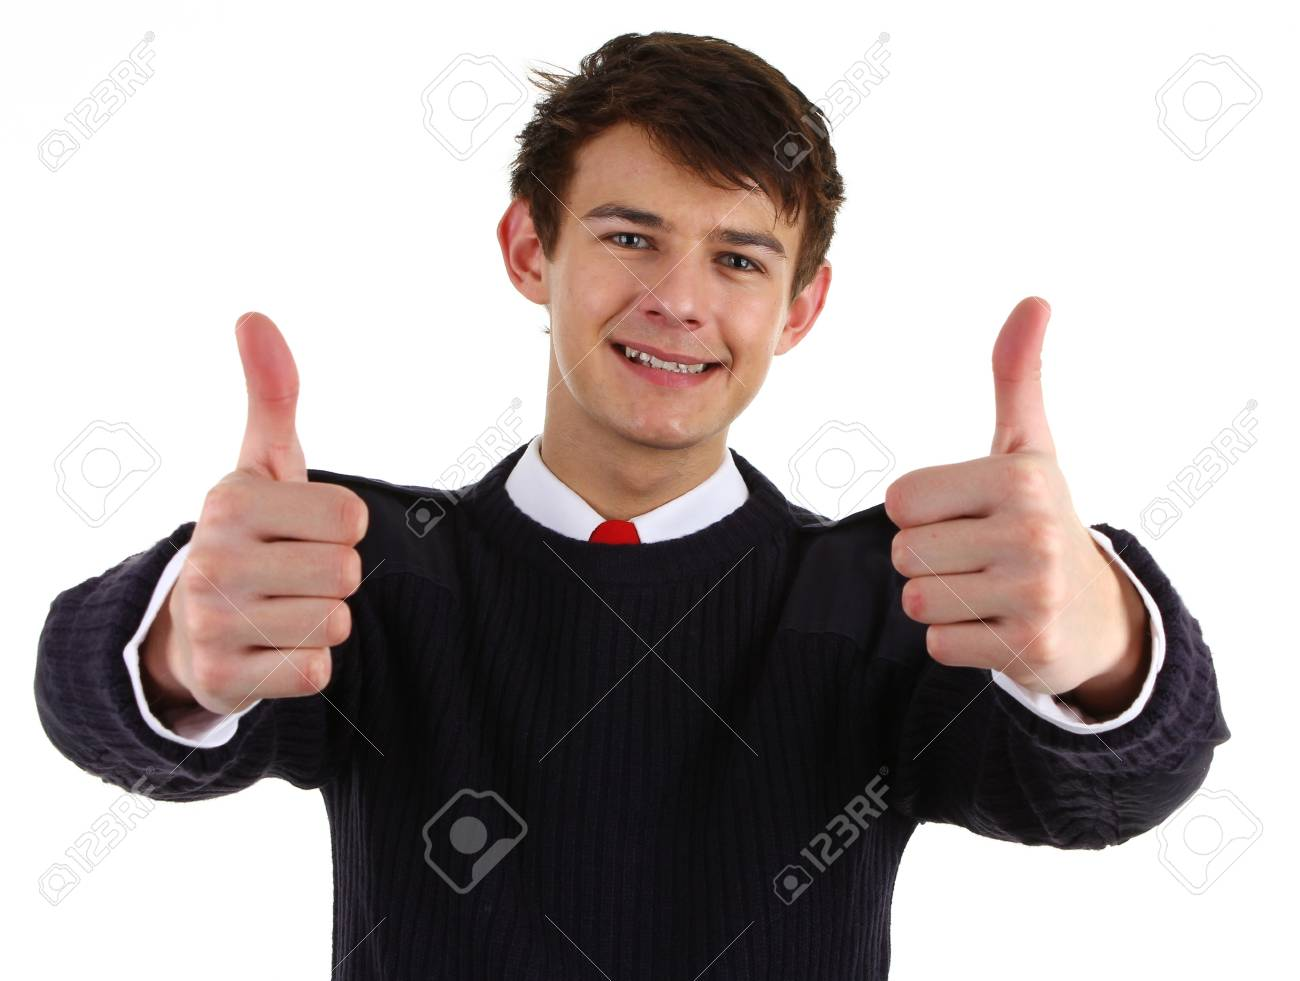 A security guard with a thumbs up sign, isolated on white Stock Photo - 12504222